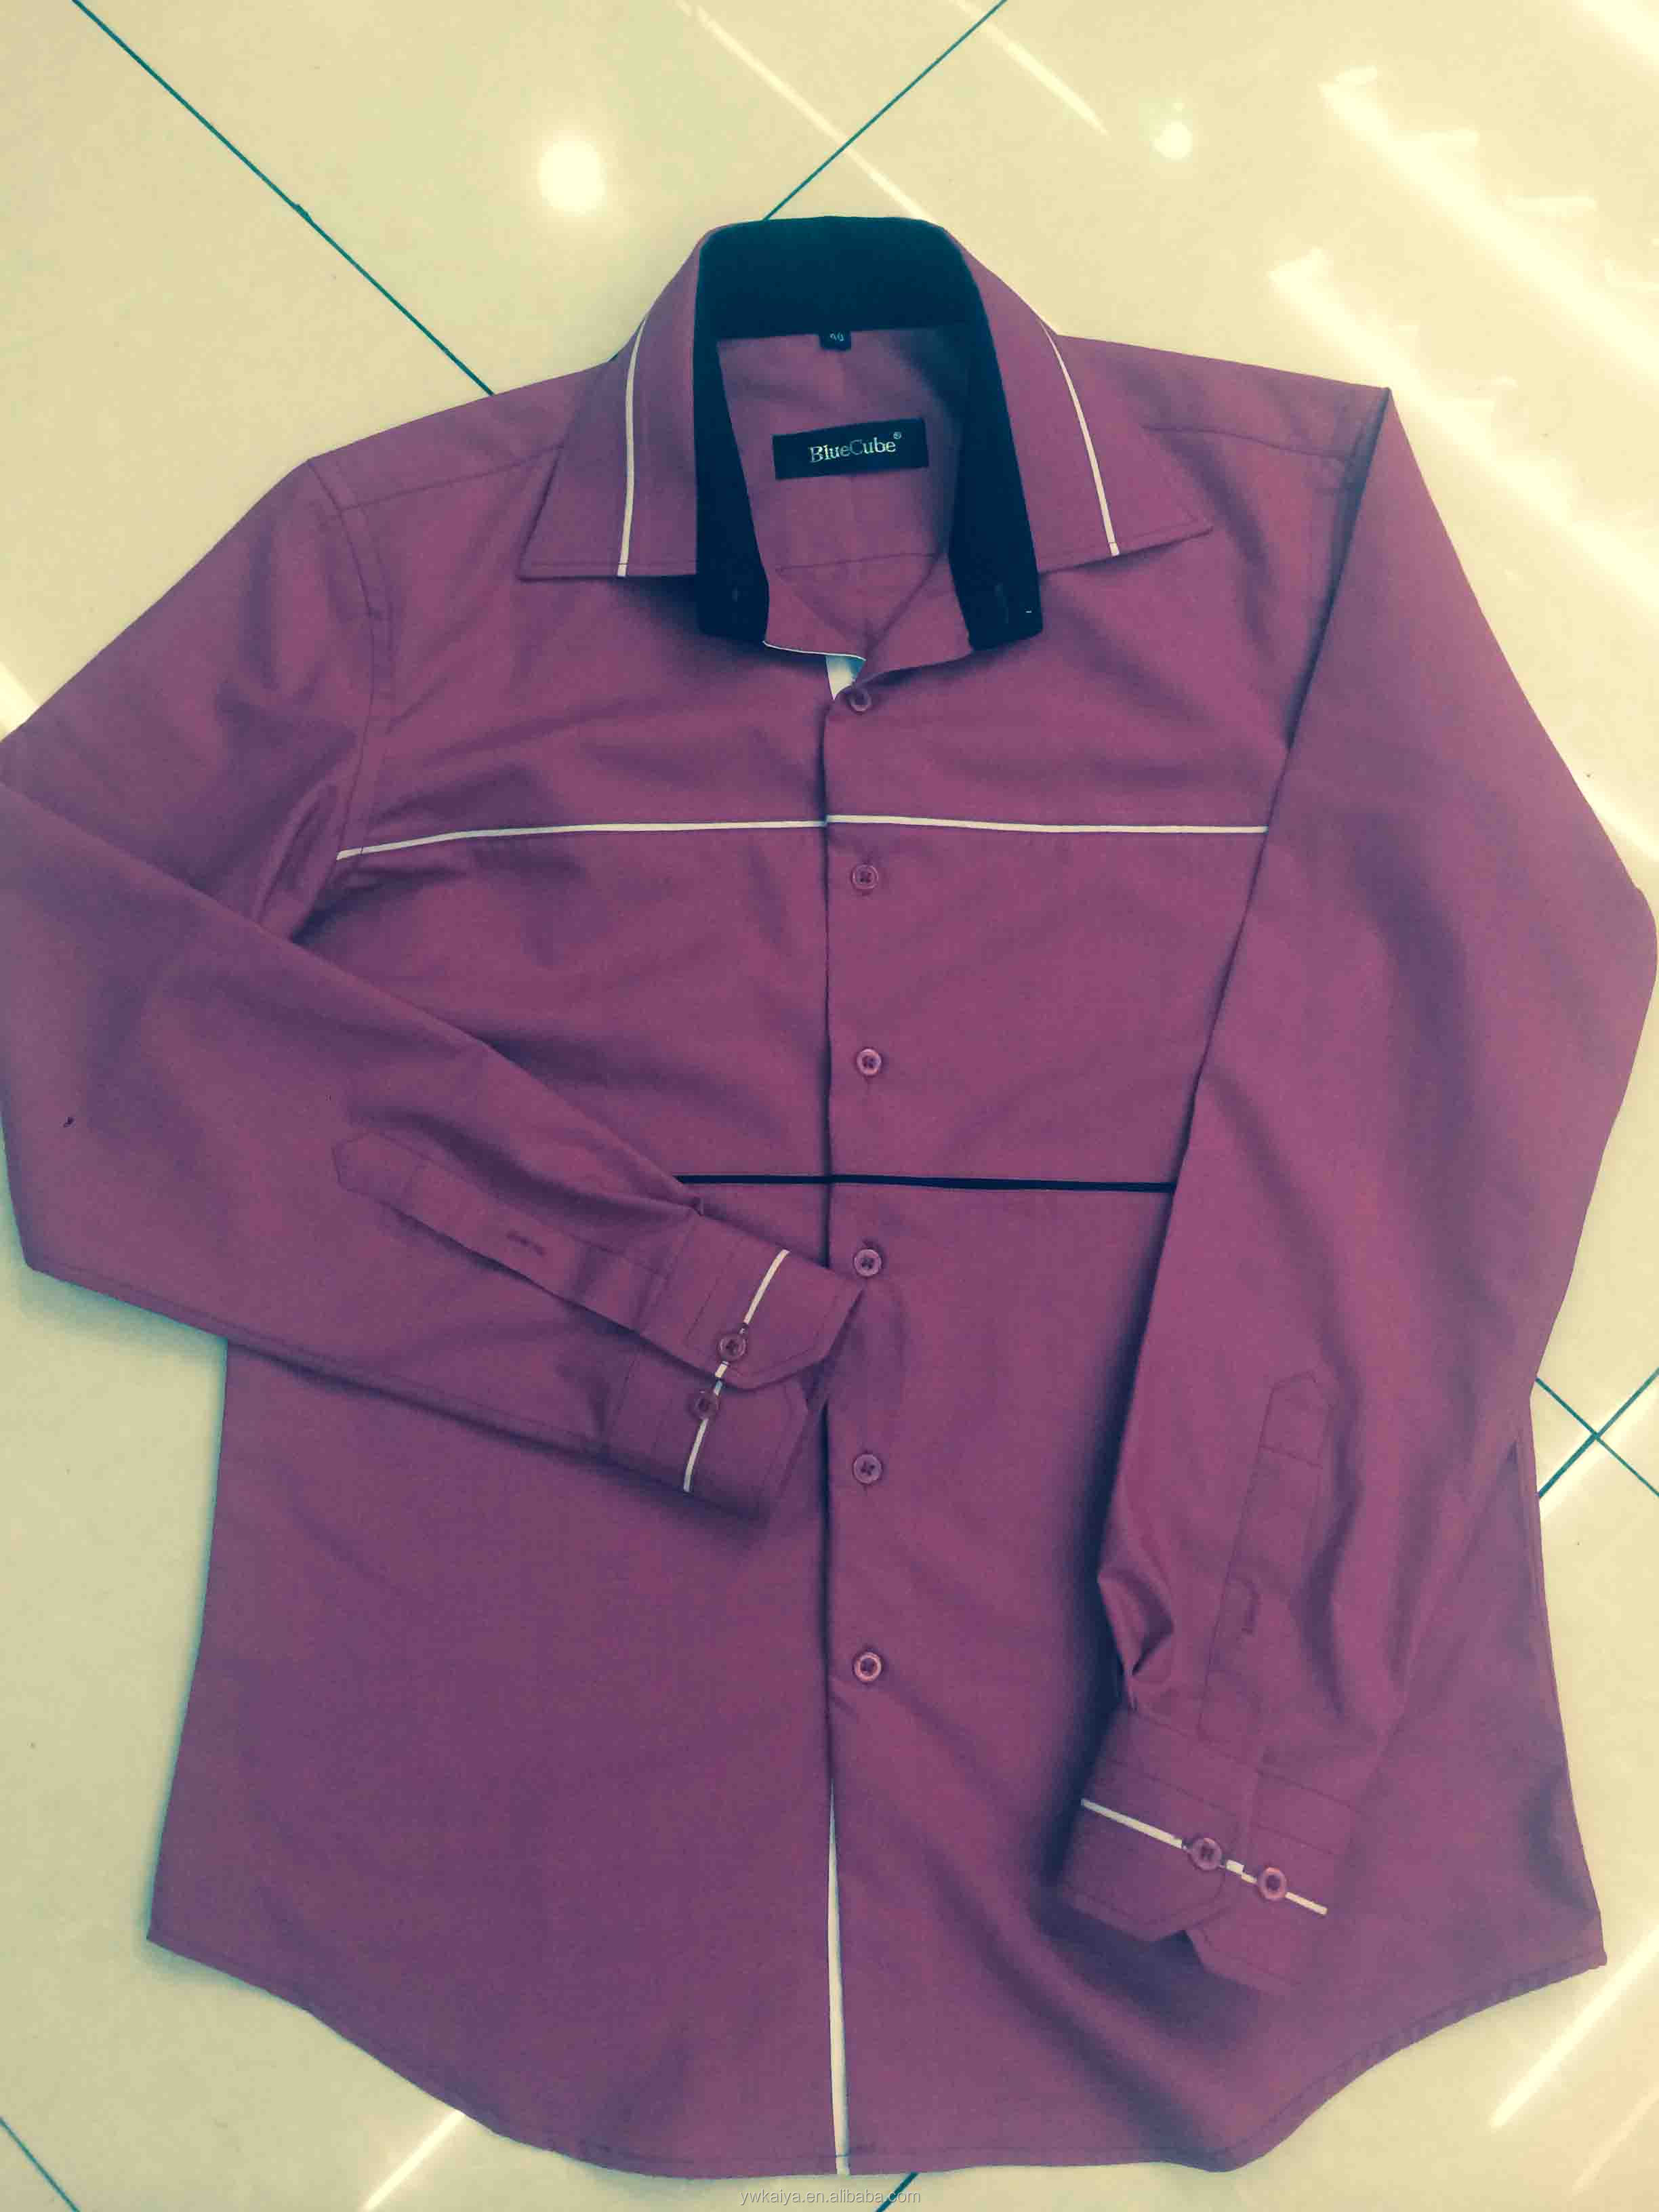 Shirt design of 2014 - 2014 China Suppiler Latest Design India Solid Color Cheap T C Business Casual Man Shirt Buy Business Shirt For Men Indina Business Shirts Fancy Casual